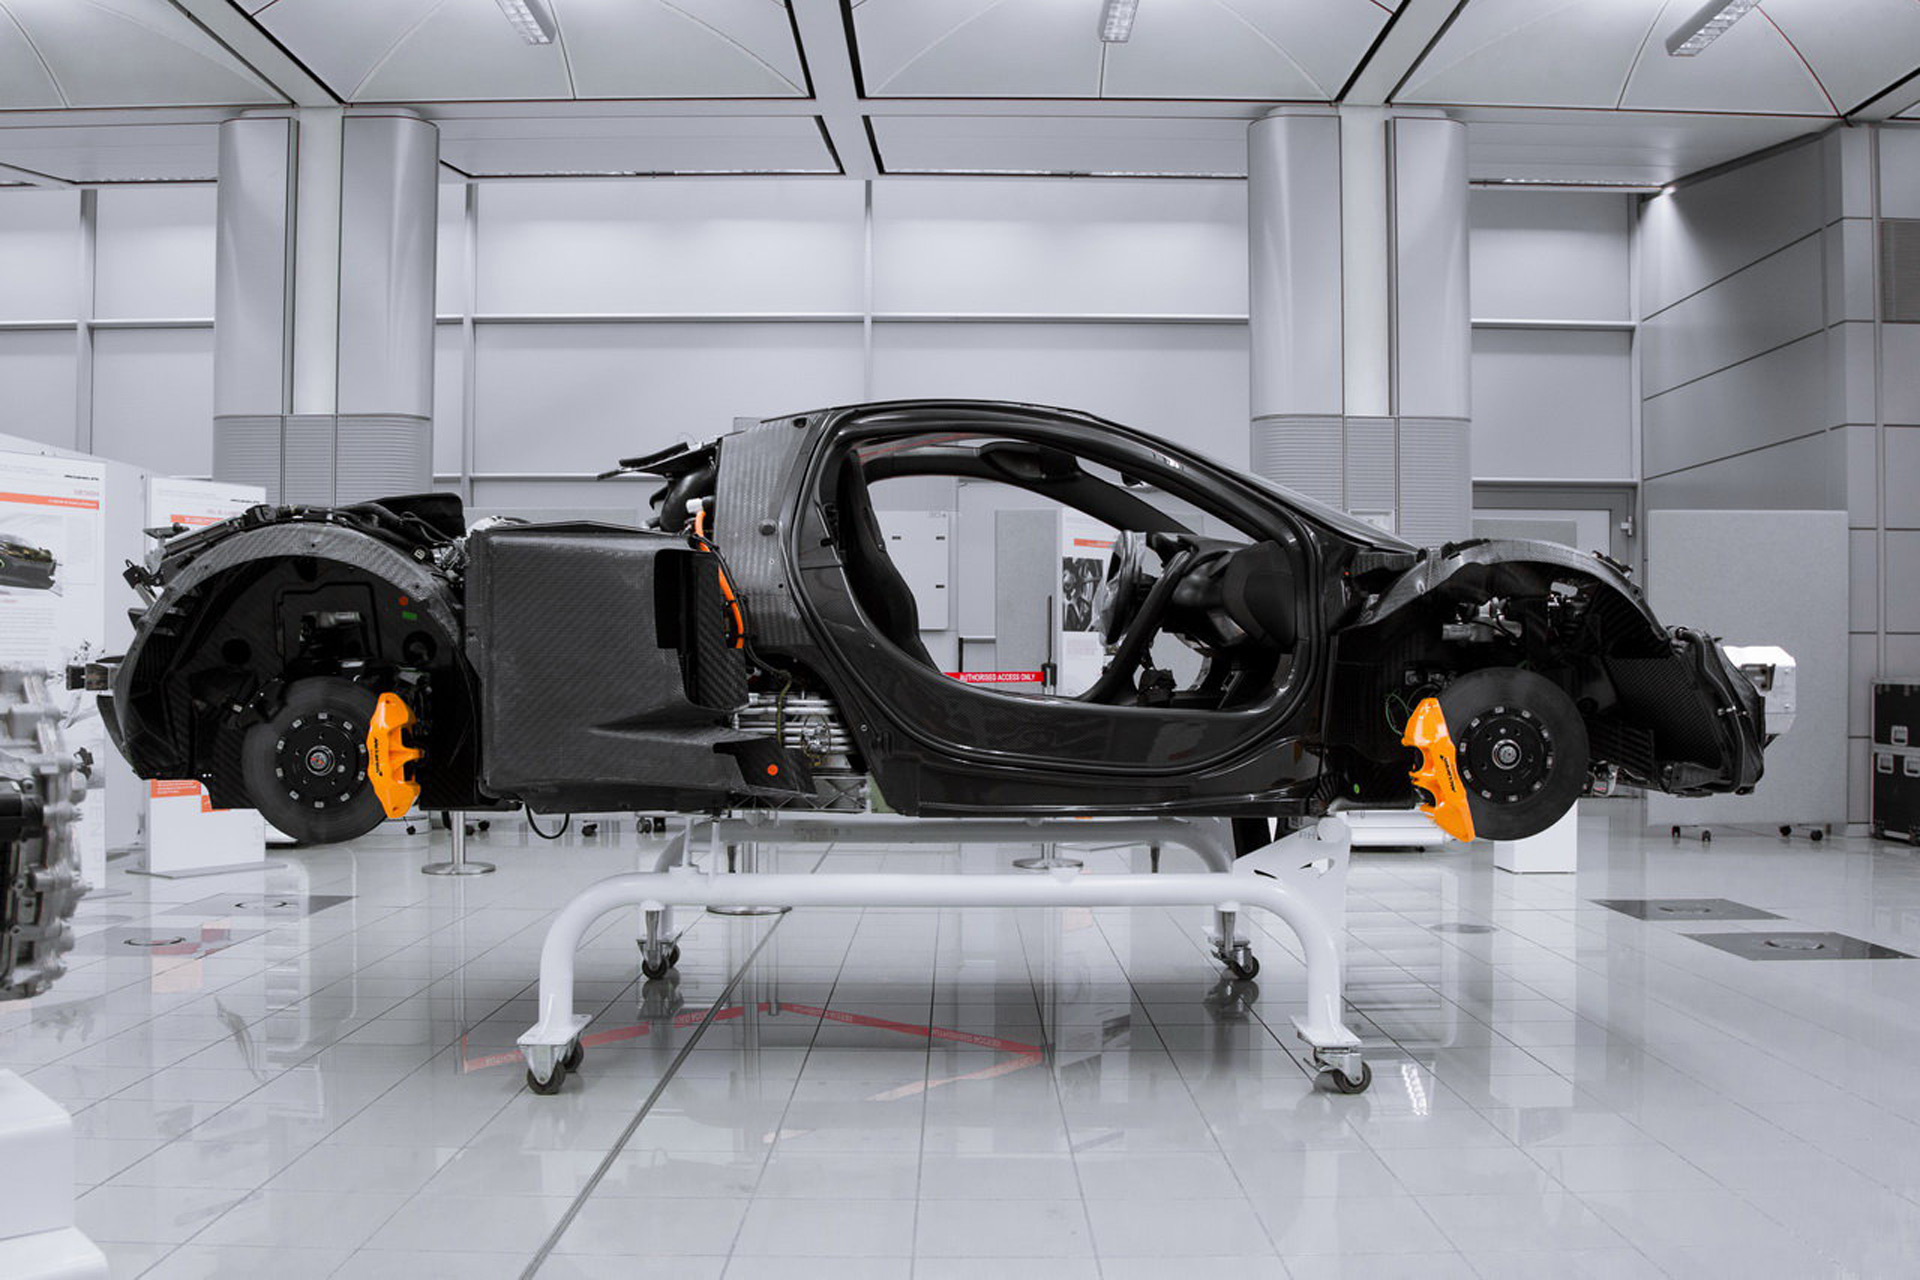 Mclaren Developing Next Generation Carbon Tub And Powertrain